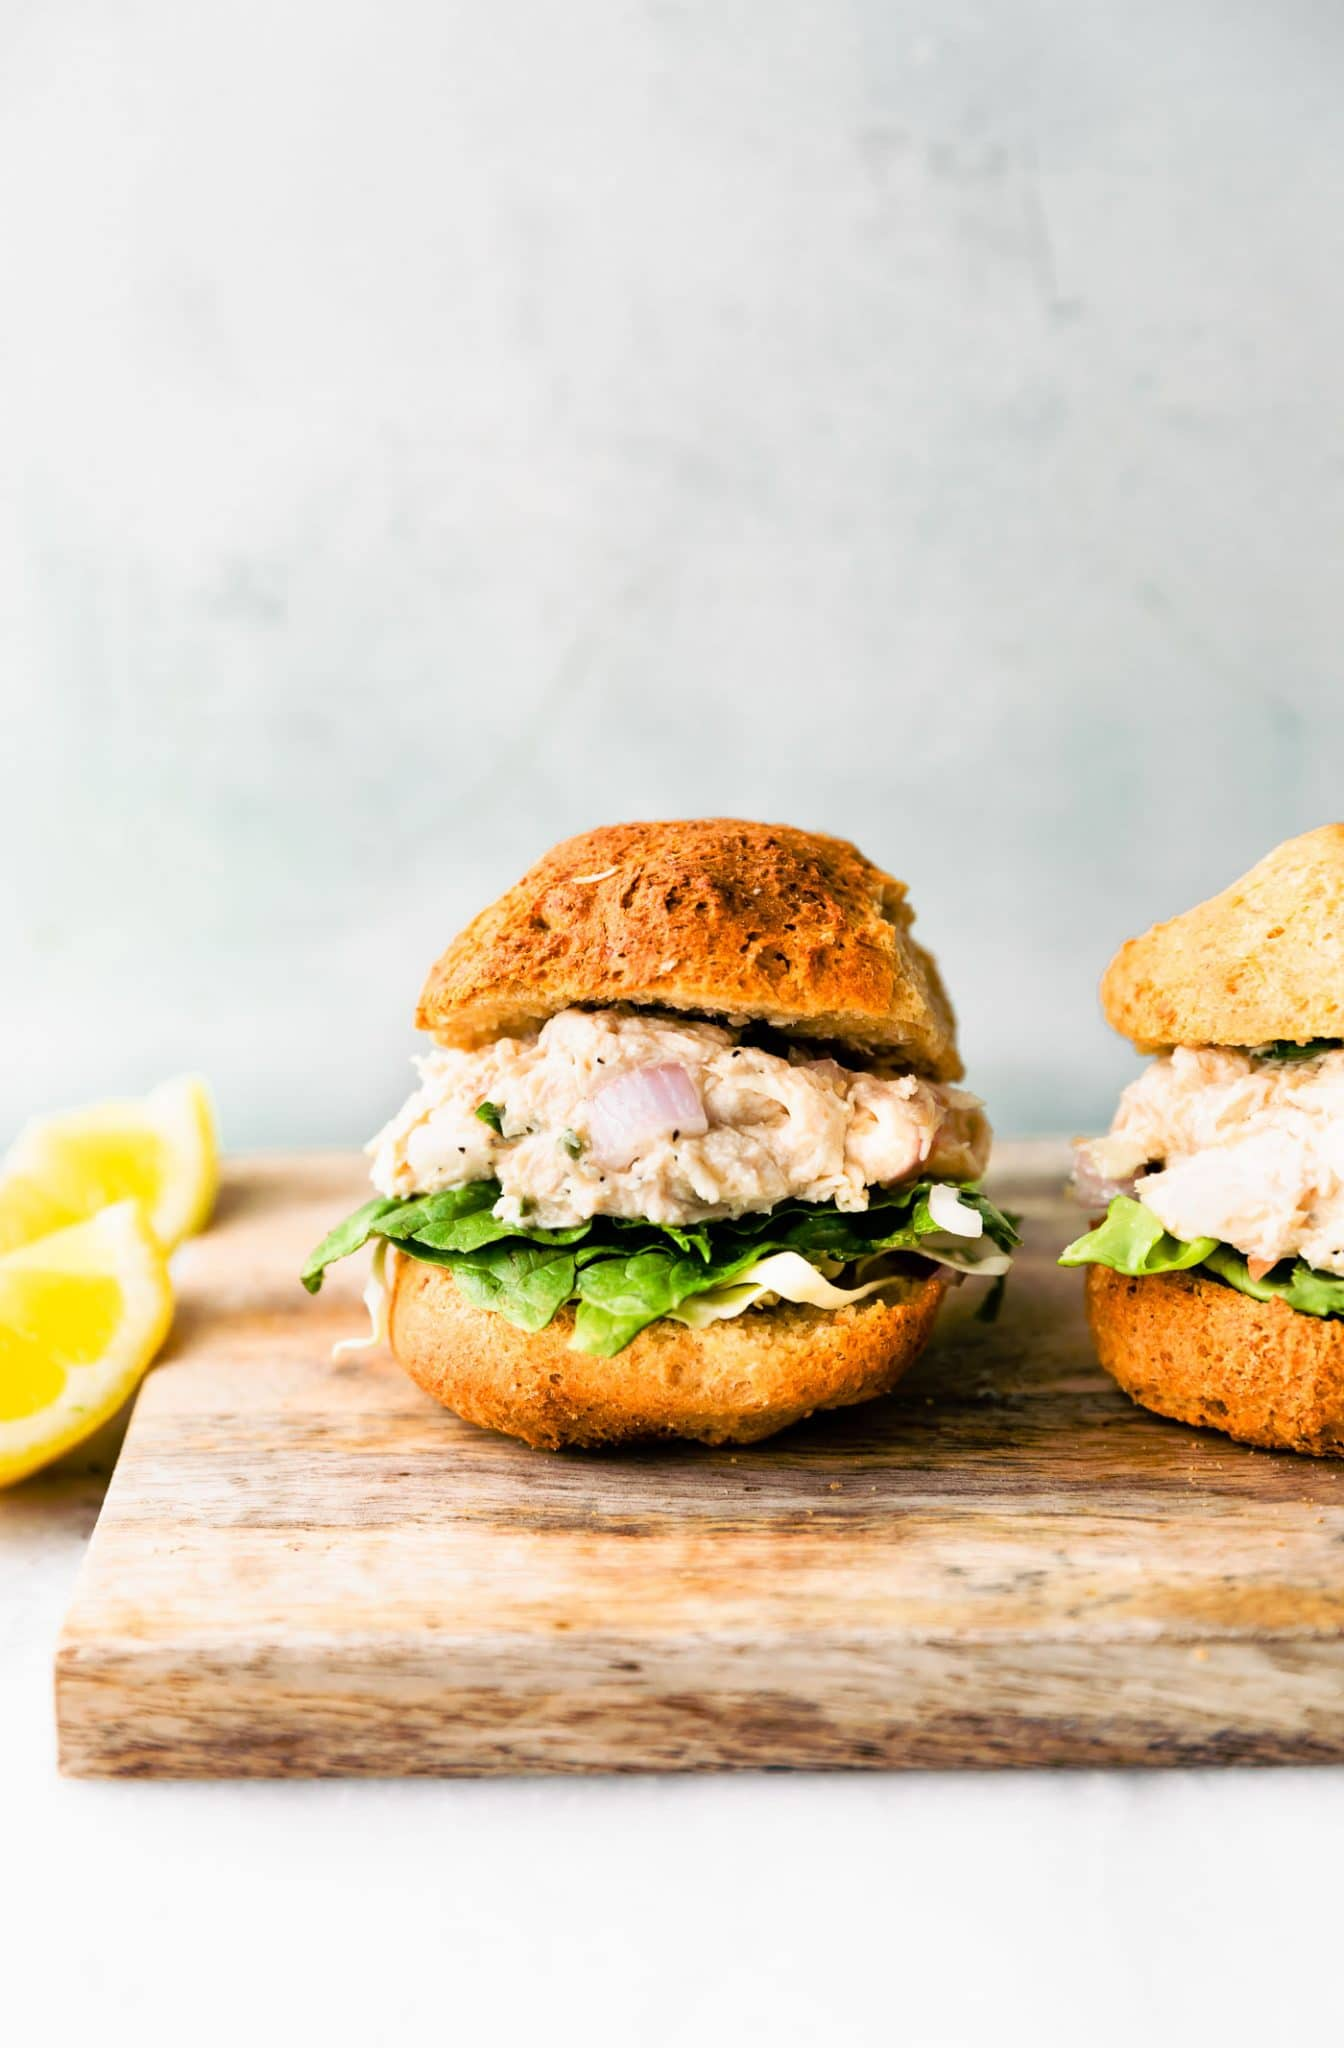 Side close up image of a chicken salad sandwich on a cutting board garnished with lemon.